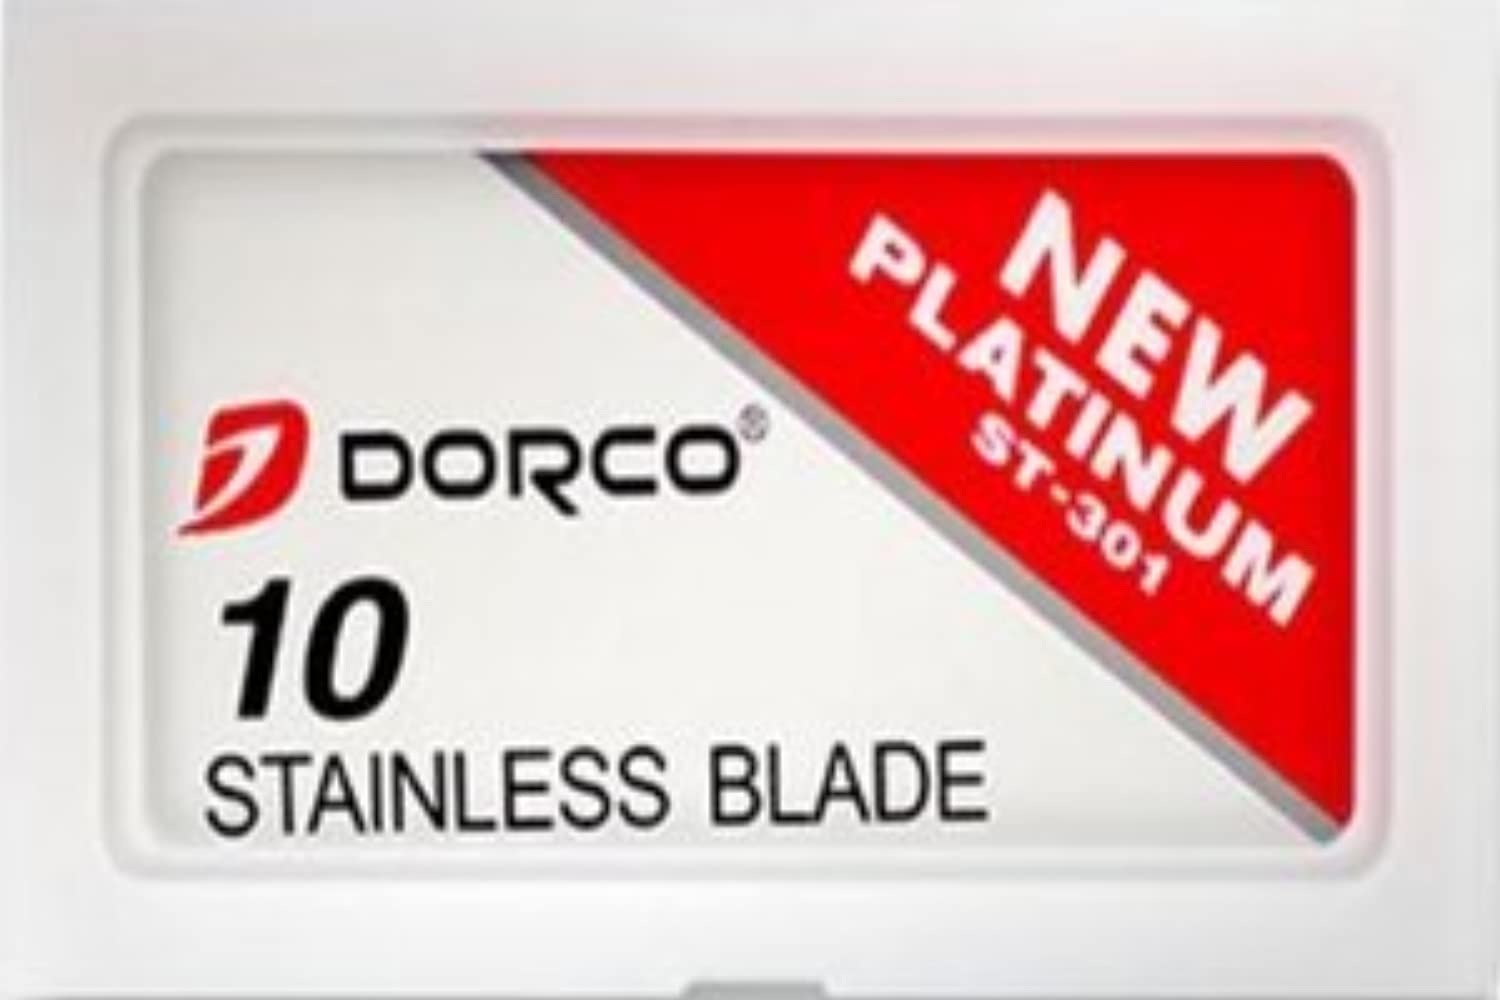 Dorco ST-301 Stainless 両刃替刃 10枚入り(10枚入り1 個セット)【並行輸入品】